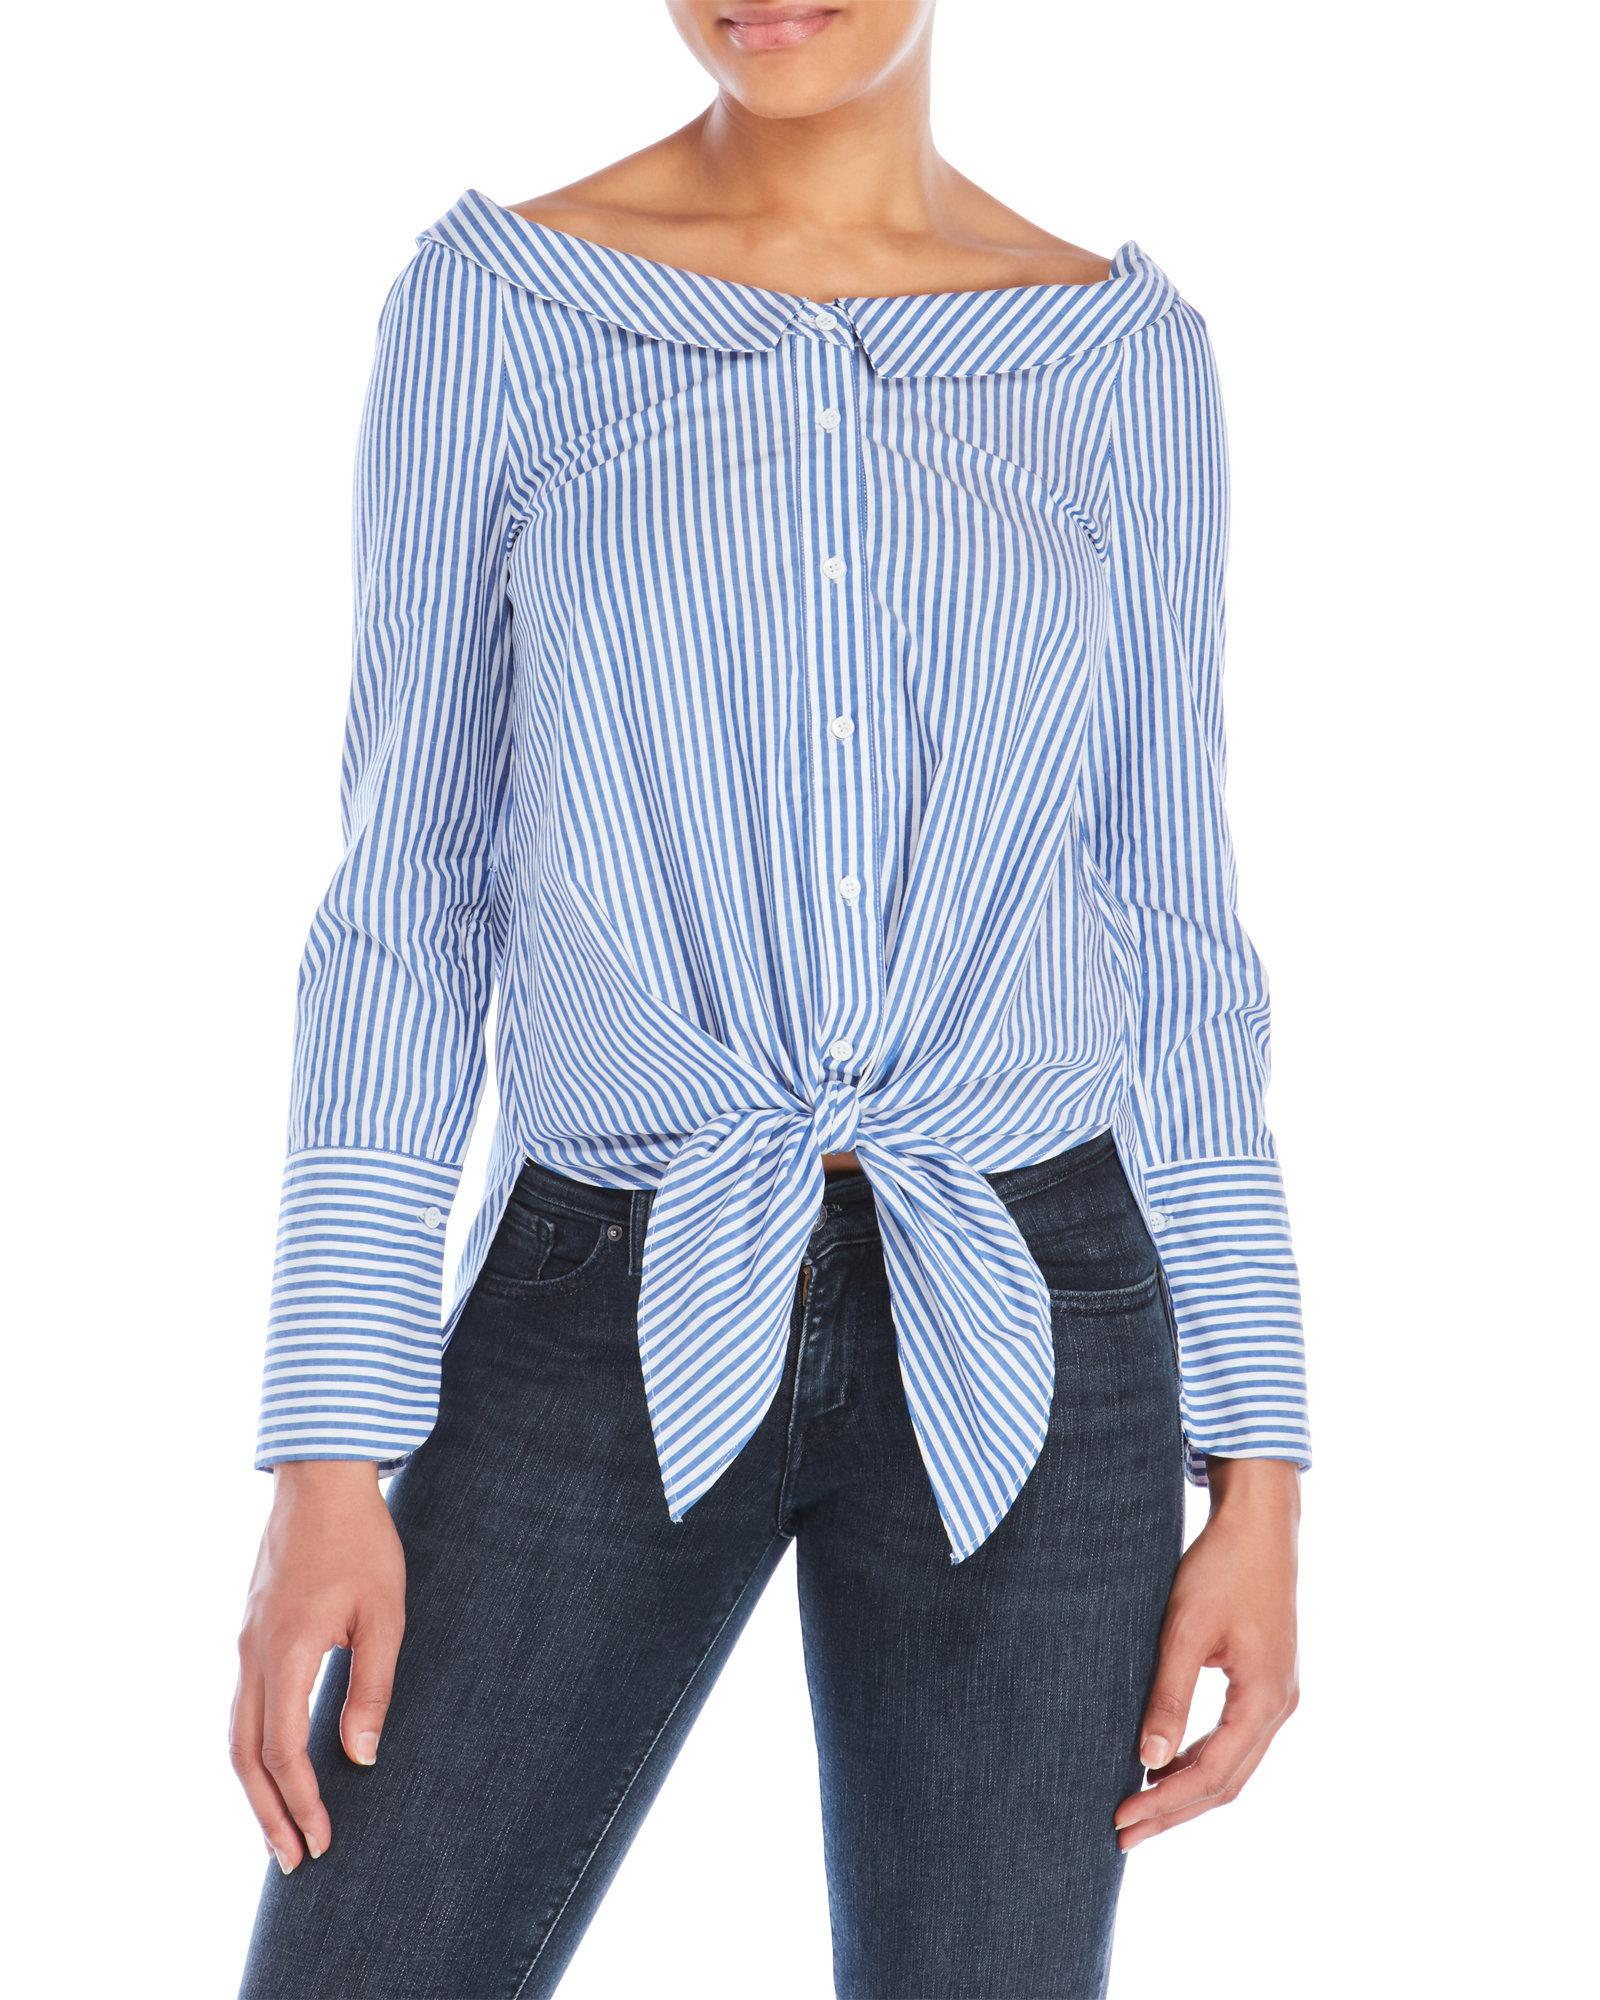 Do be collection striped tie front shirt in blue lyst for Blue striped shirt with tie